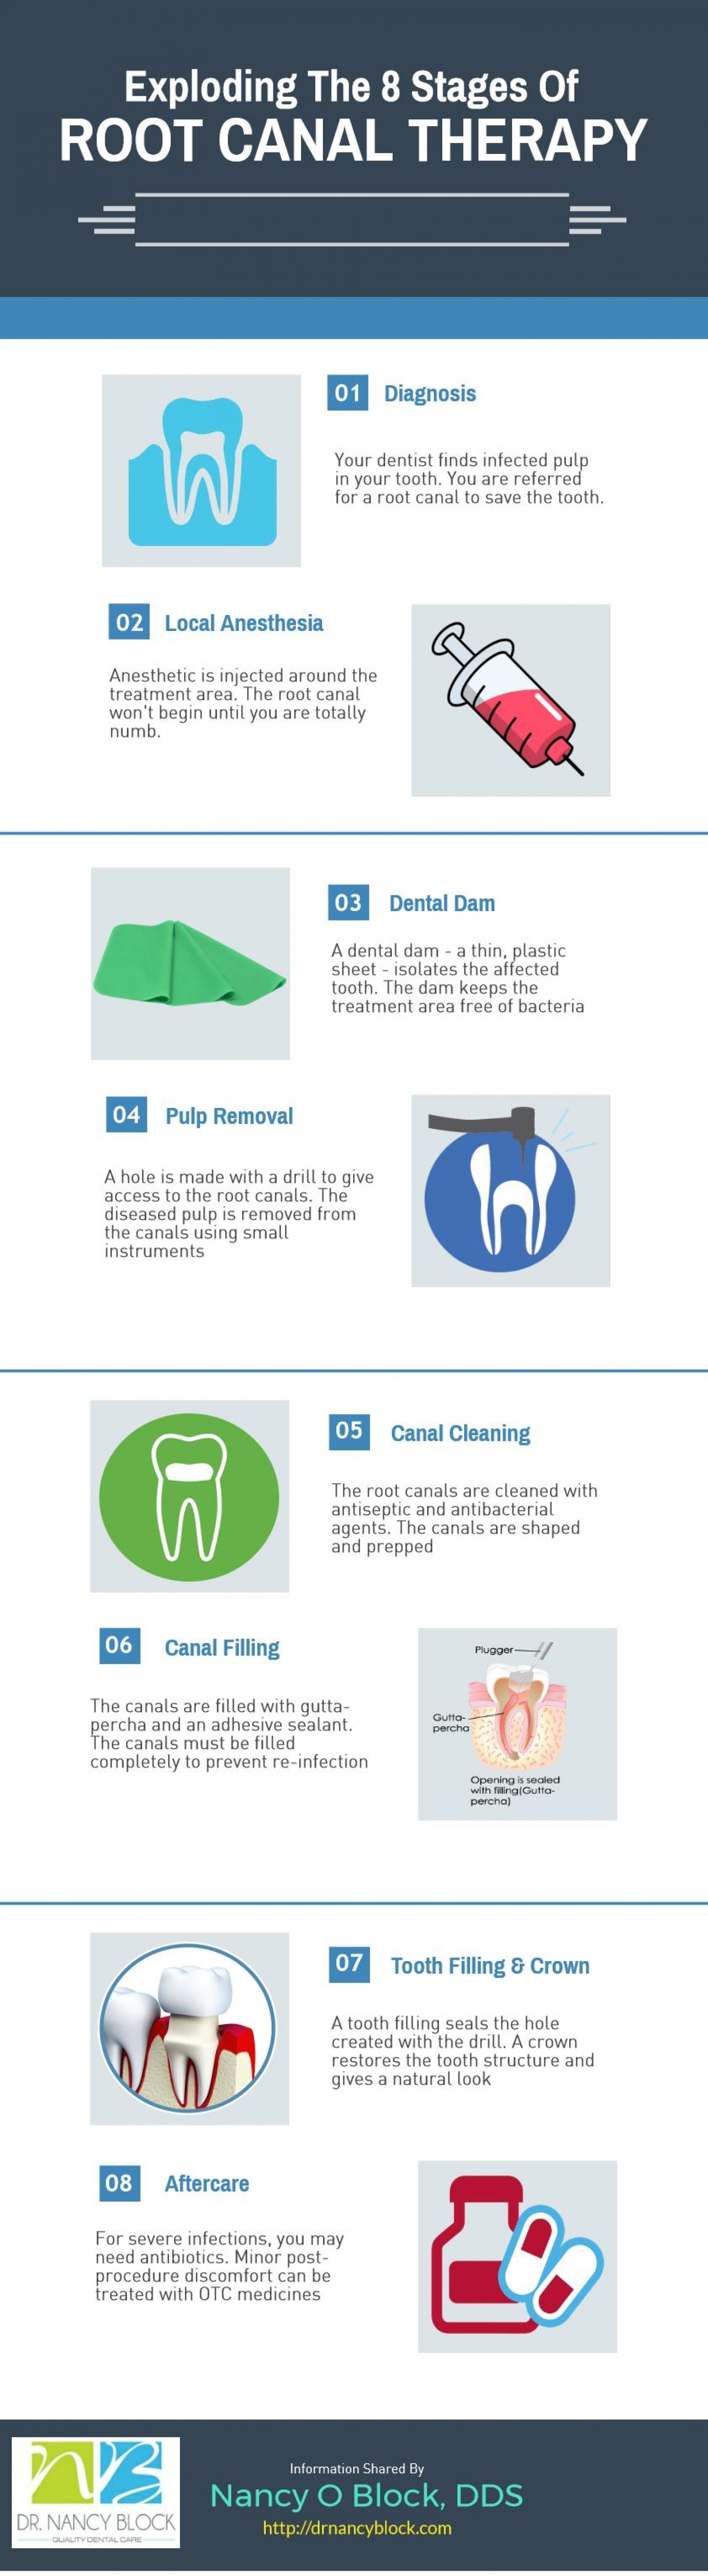 Different Stages Of Root Canal Therapy Infographic